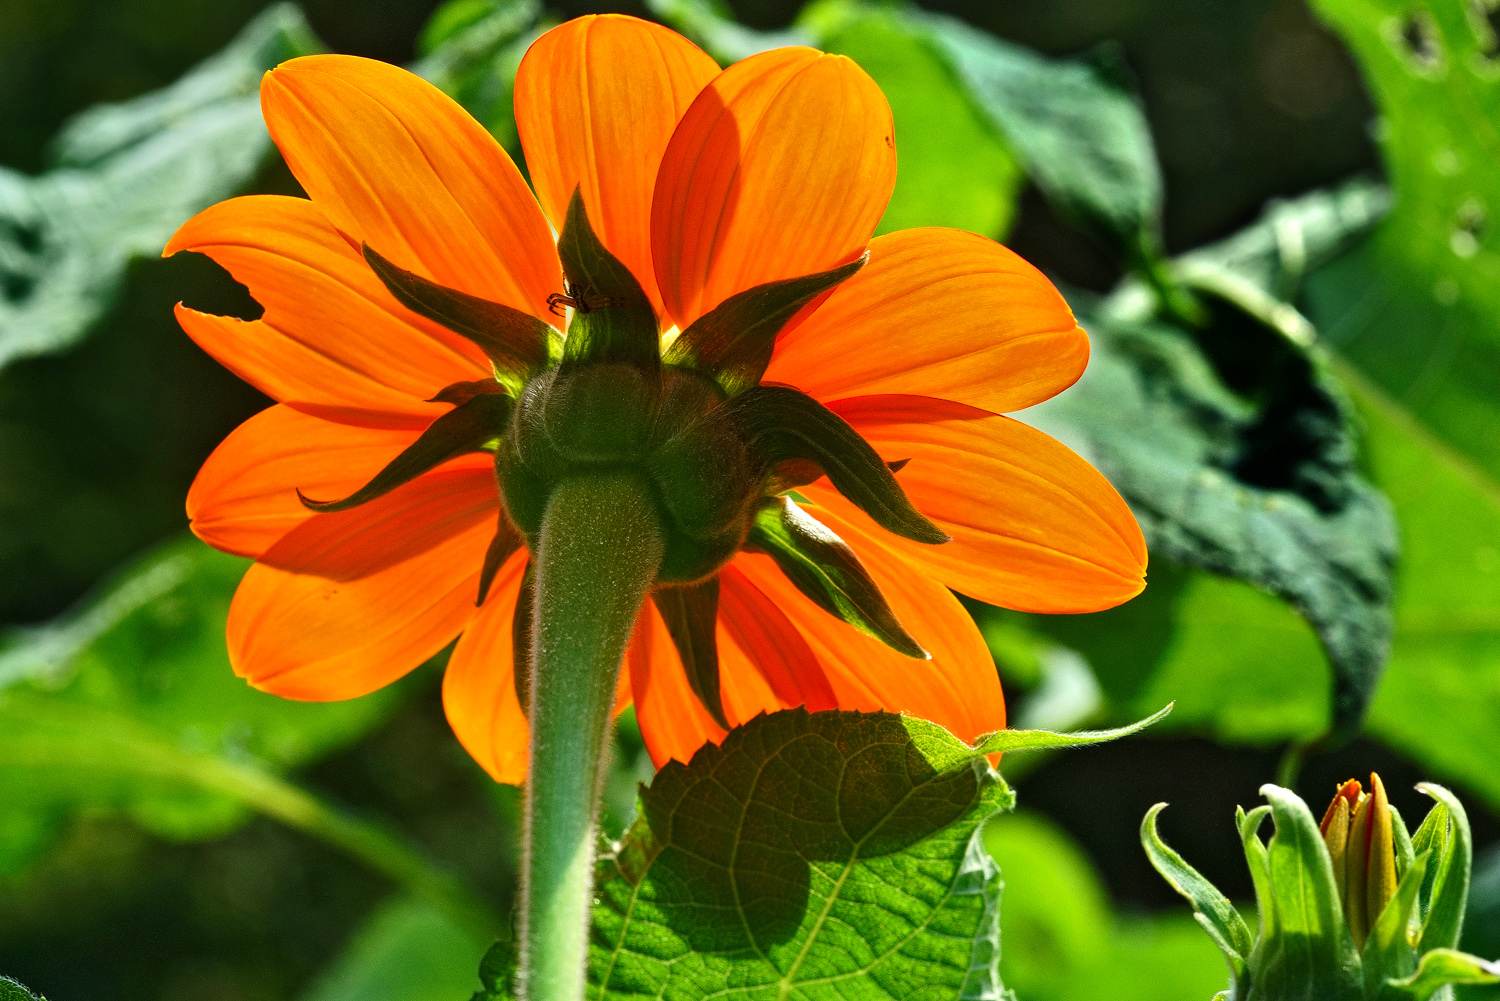 mexican sunflower dsc aw author sava gregory and verena